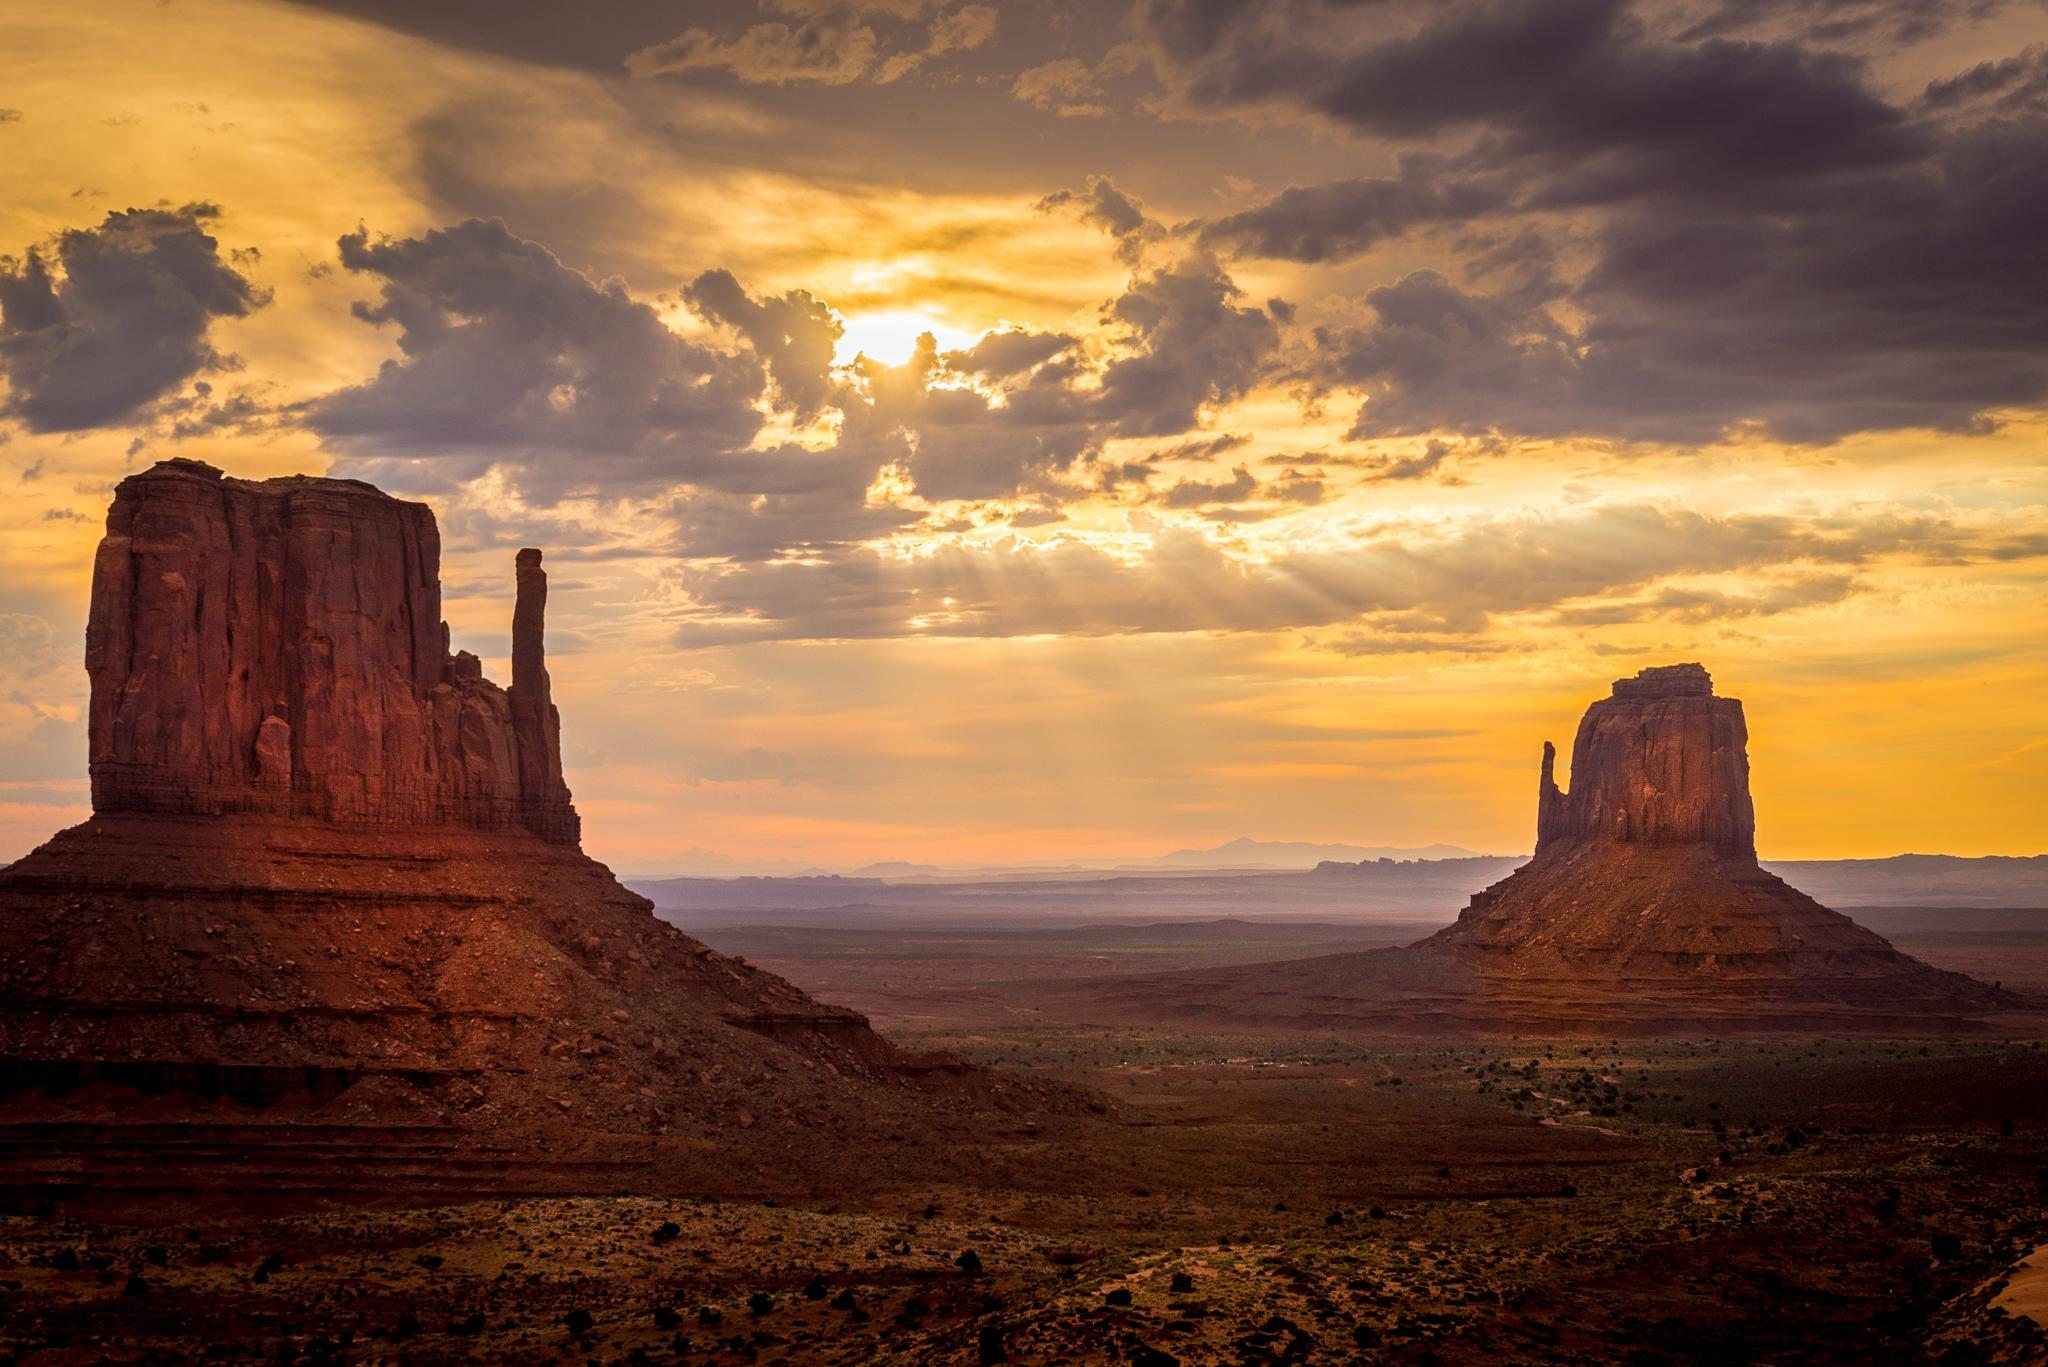 Sunrise Over the Mittens by Curt Wells